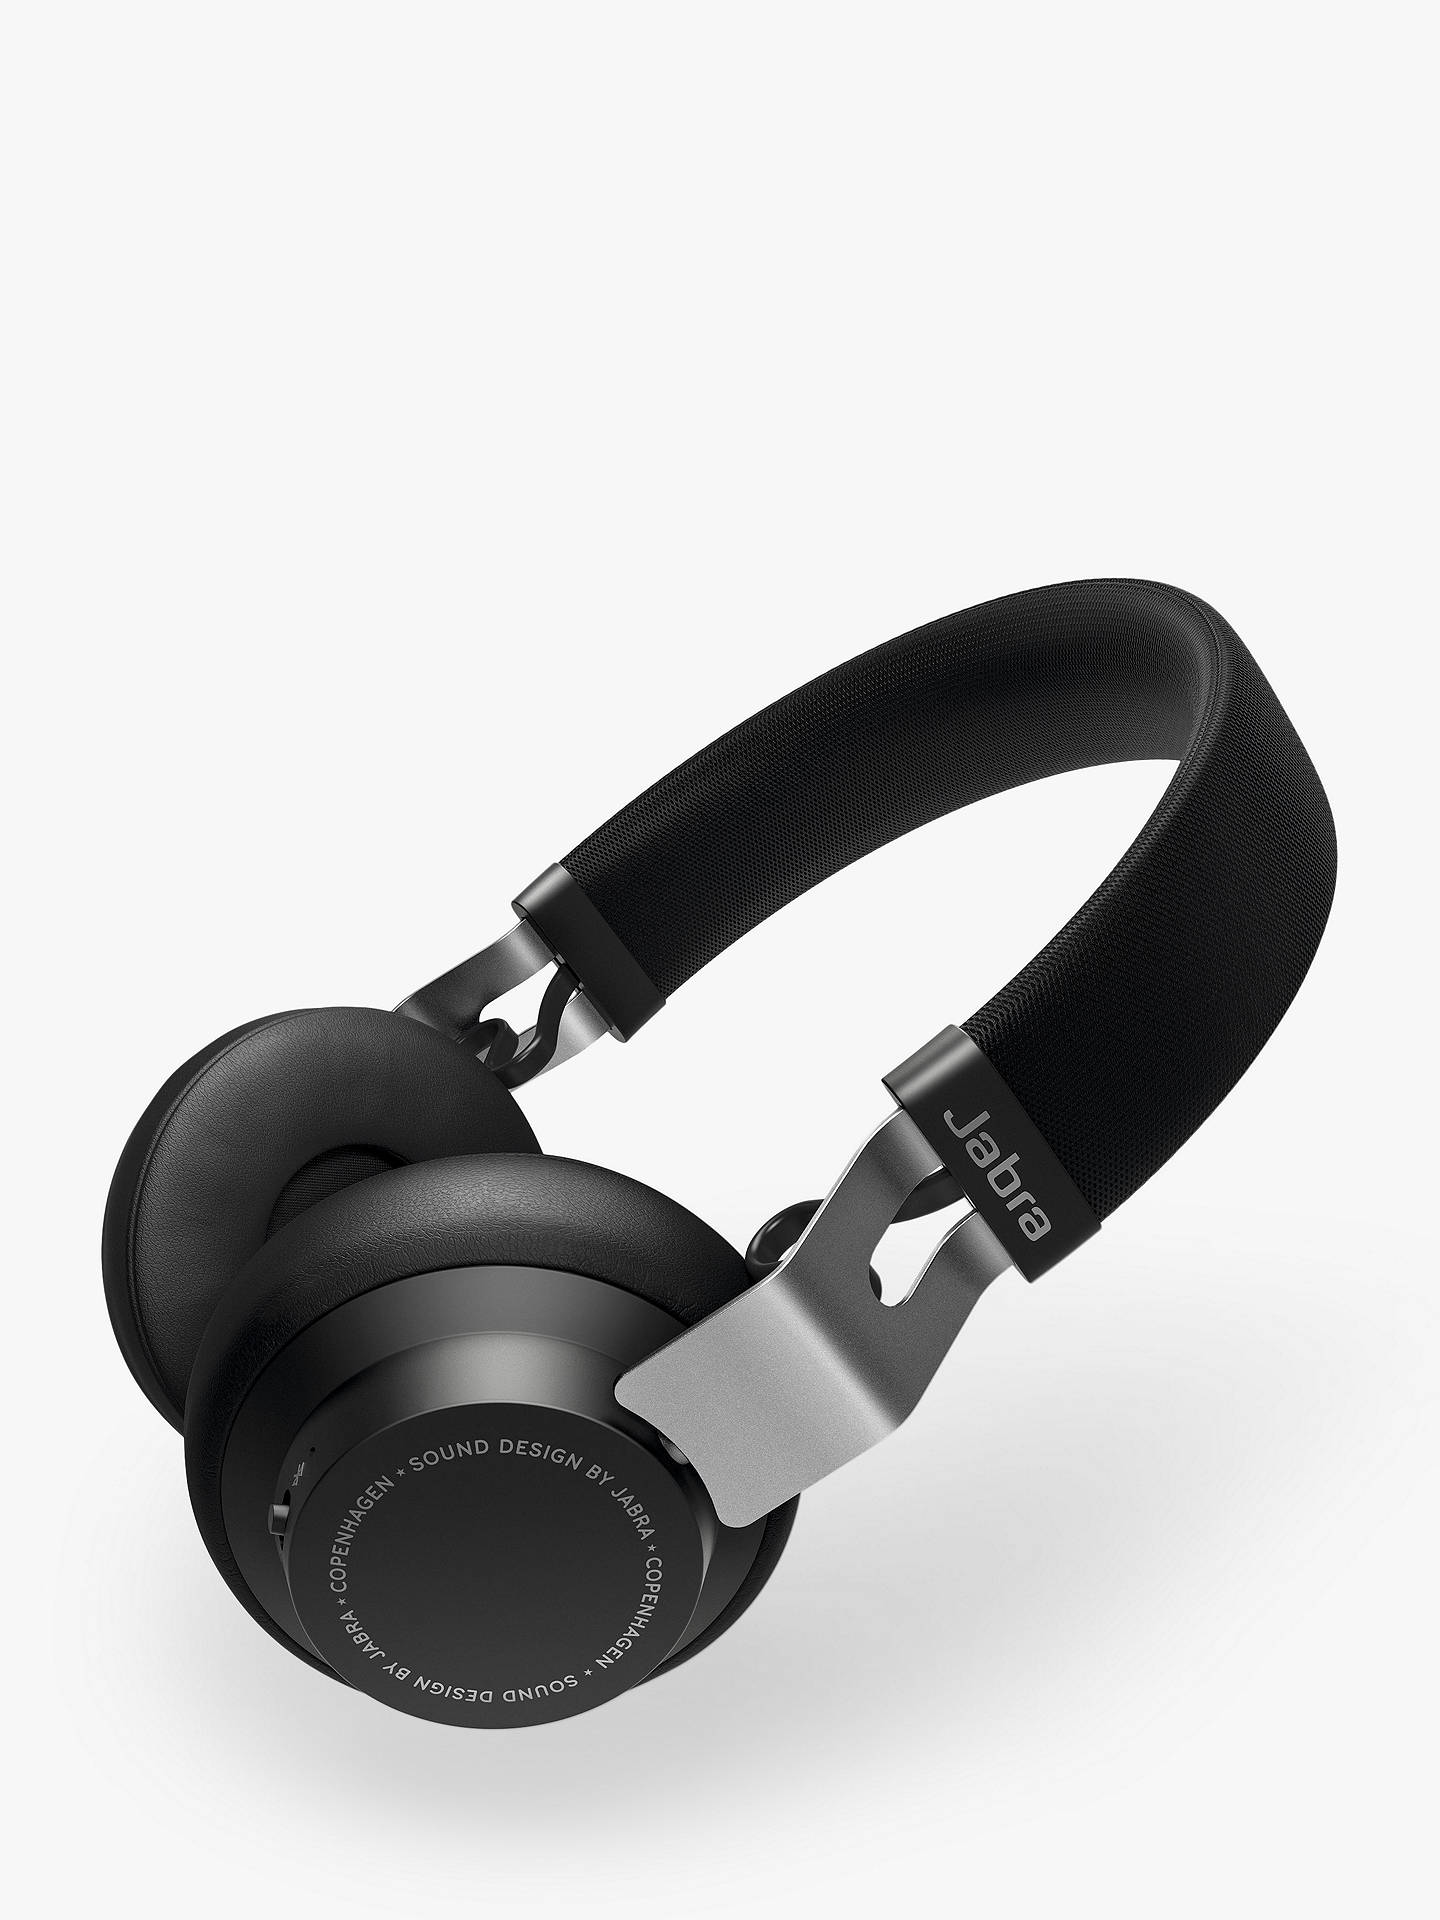 Buy Jabra Move Style Edition Wireless Bluetooth On-Ear Headphones with Mic/Remote, Titanium Black Online at johnlewis.com